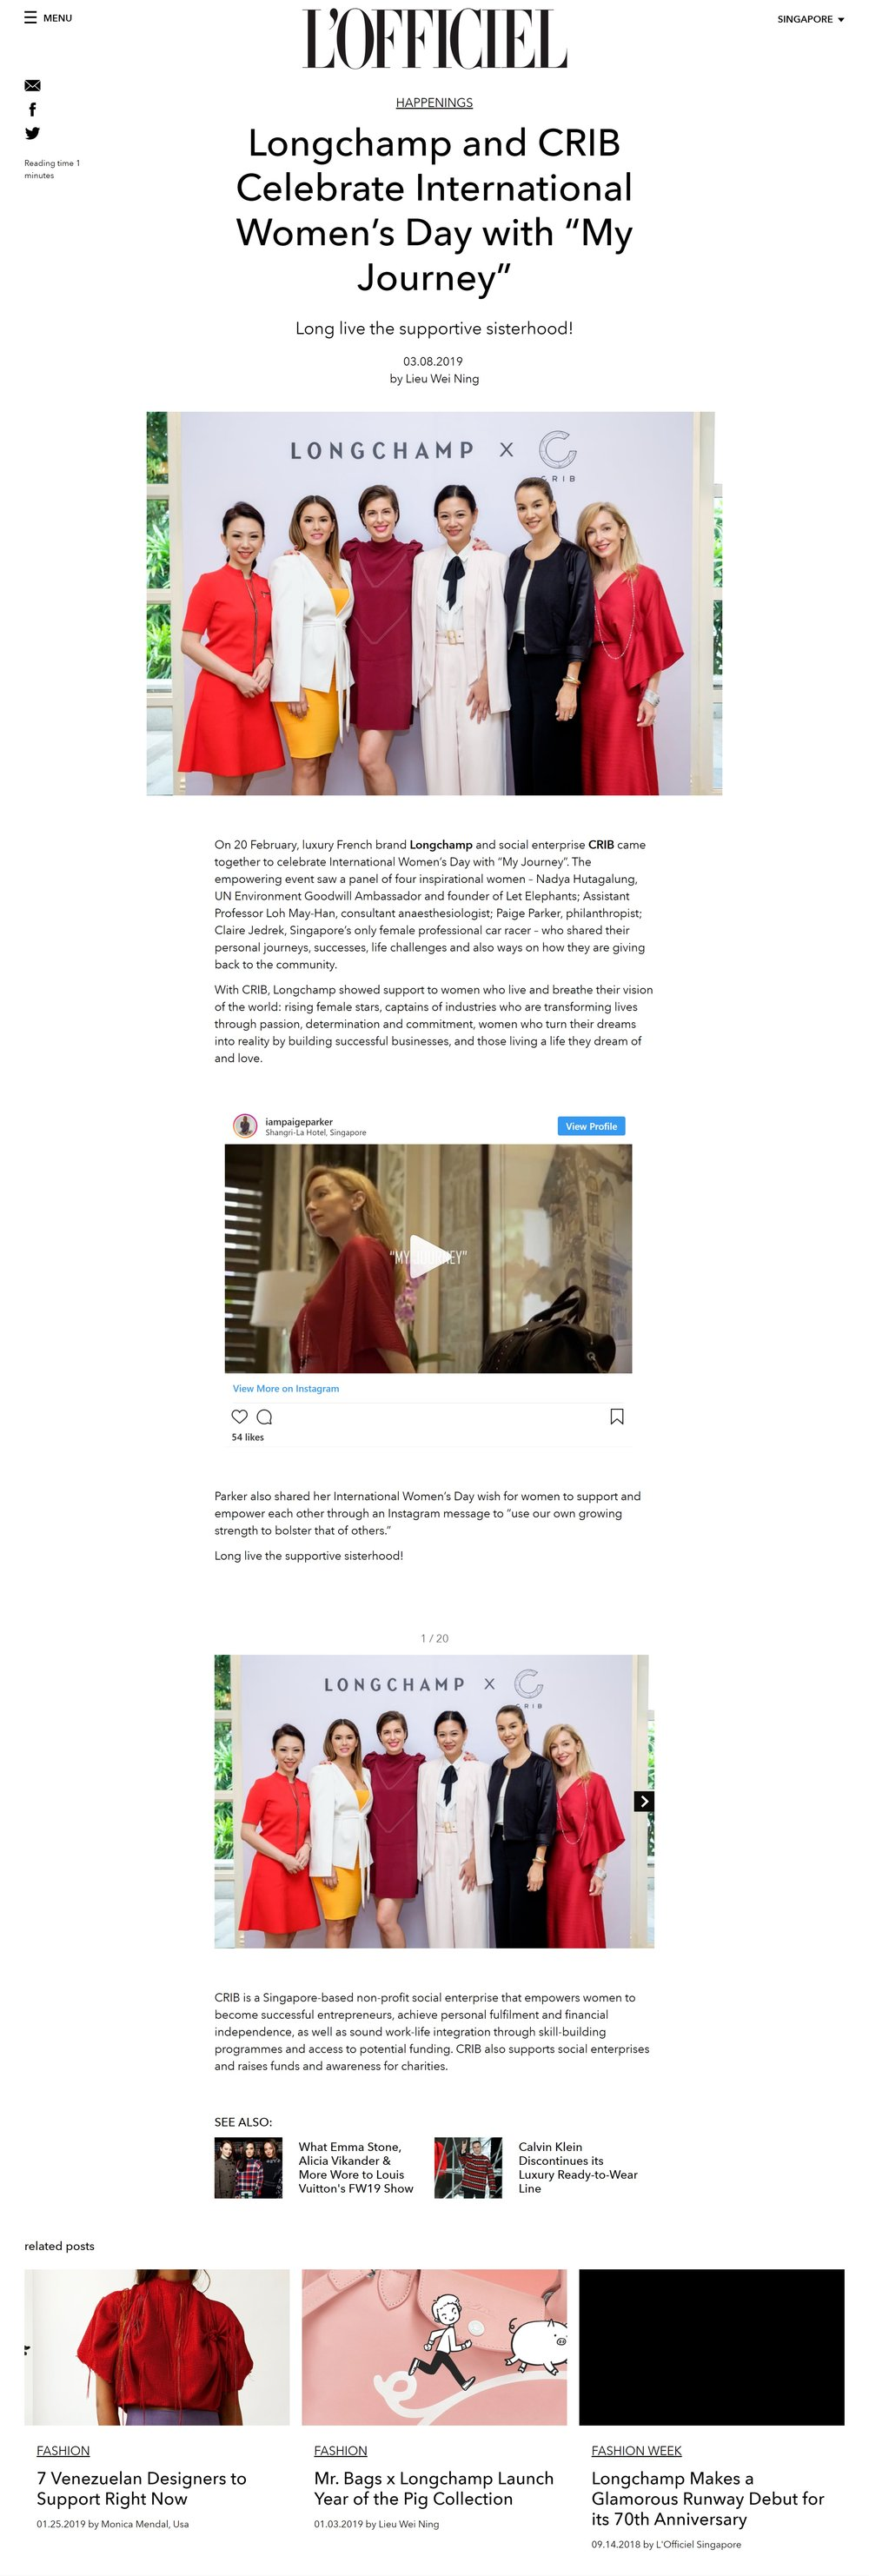 screencapture-lofficielsingapore-events-and-parties-longchamp-and-crib-celebrate-international-womens-day-2019-03-08-17_12_01.jpg